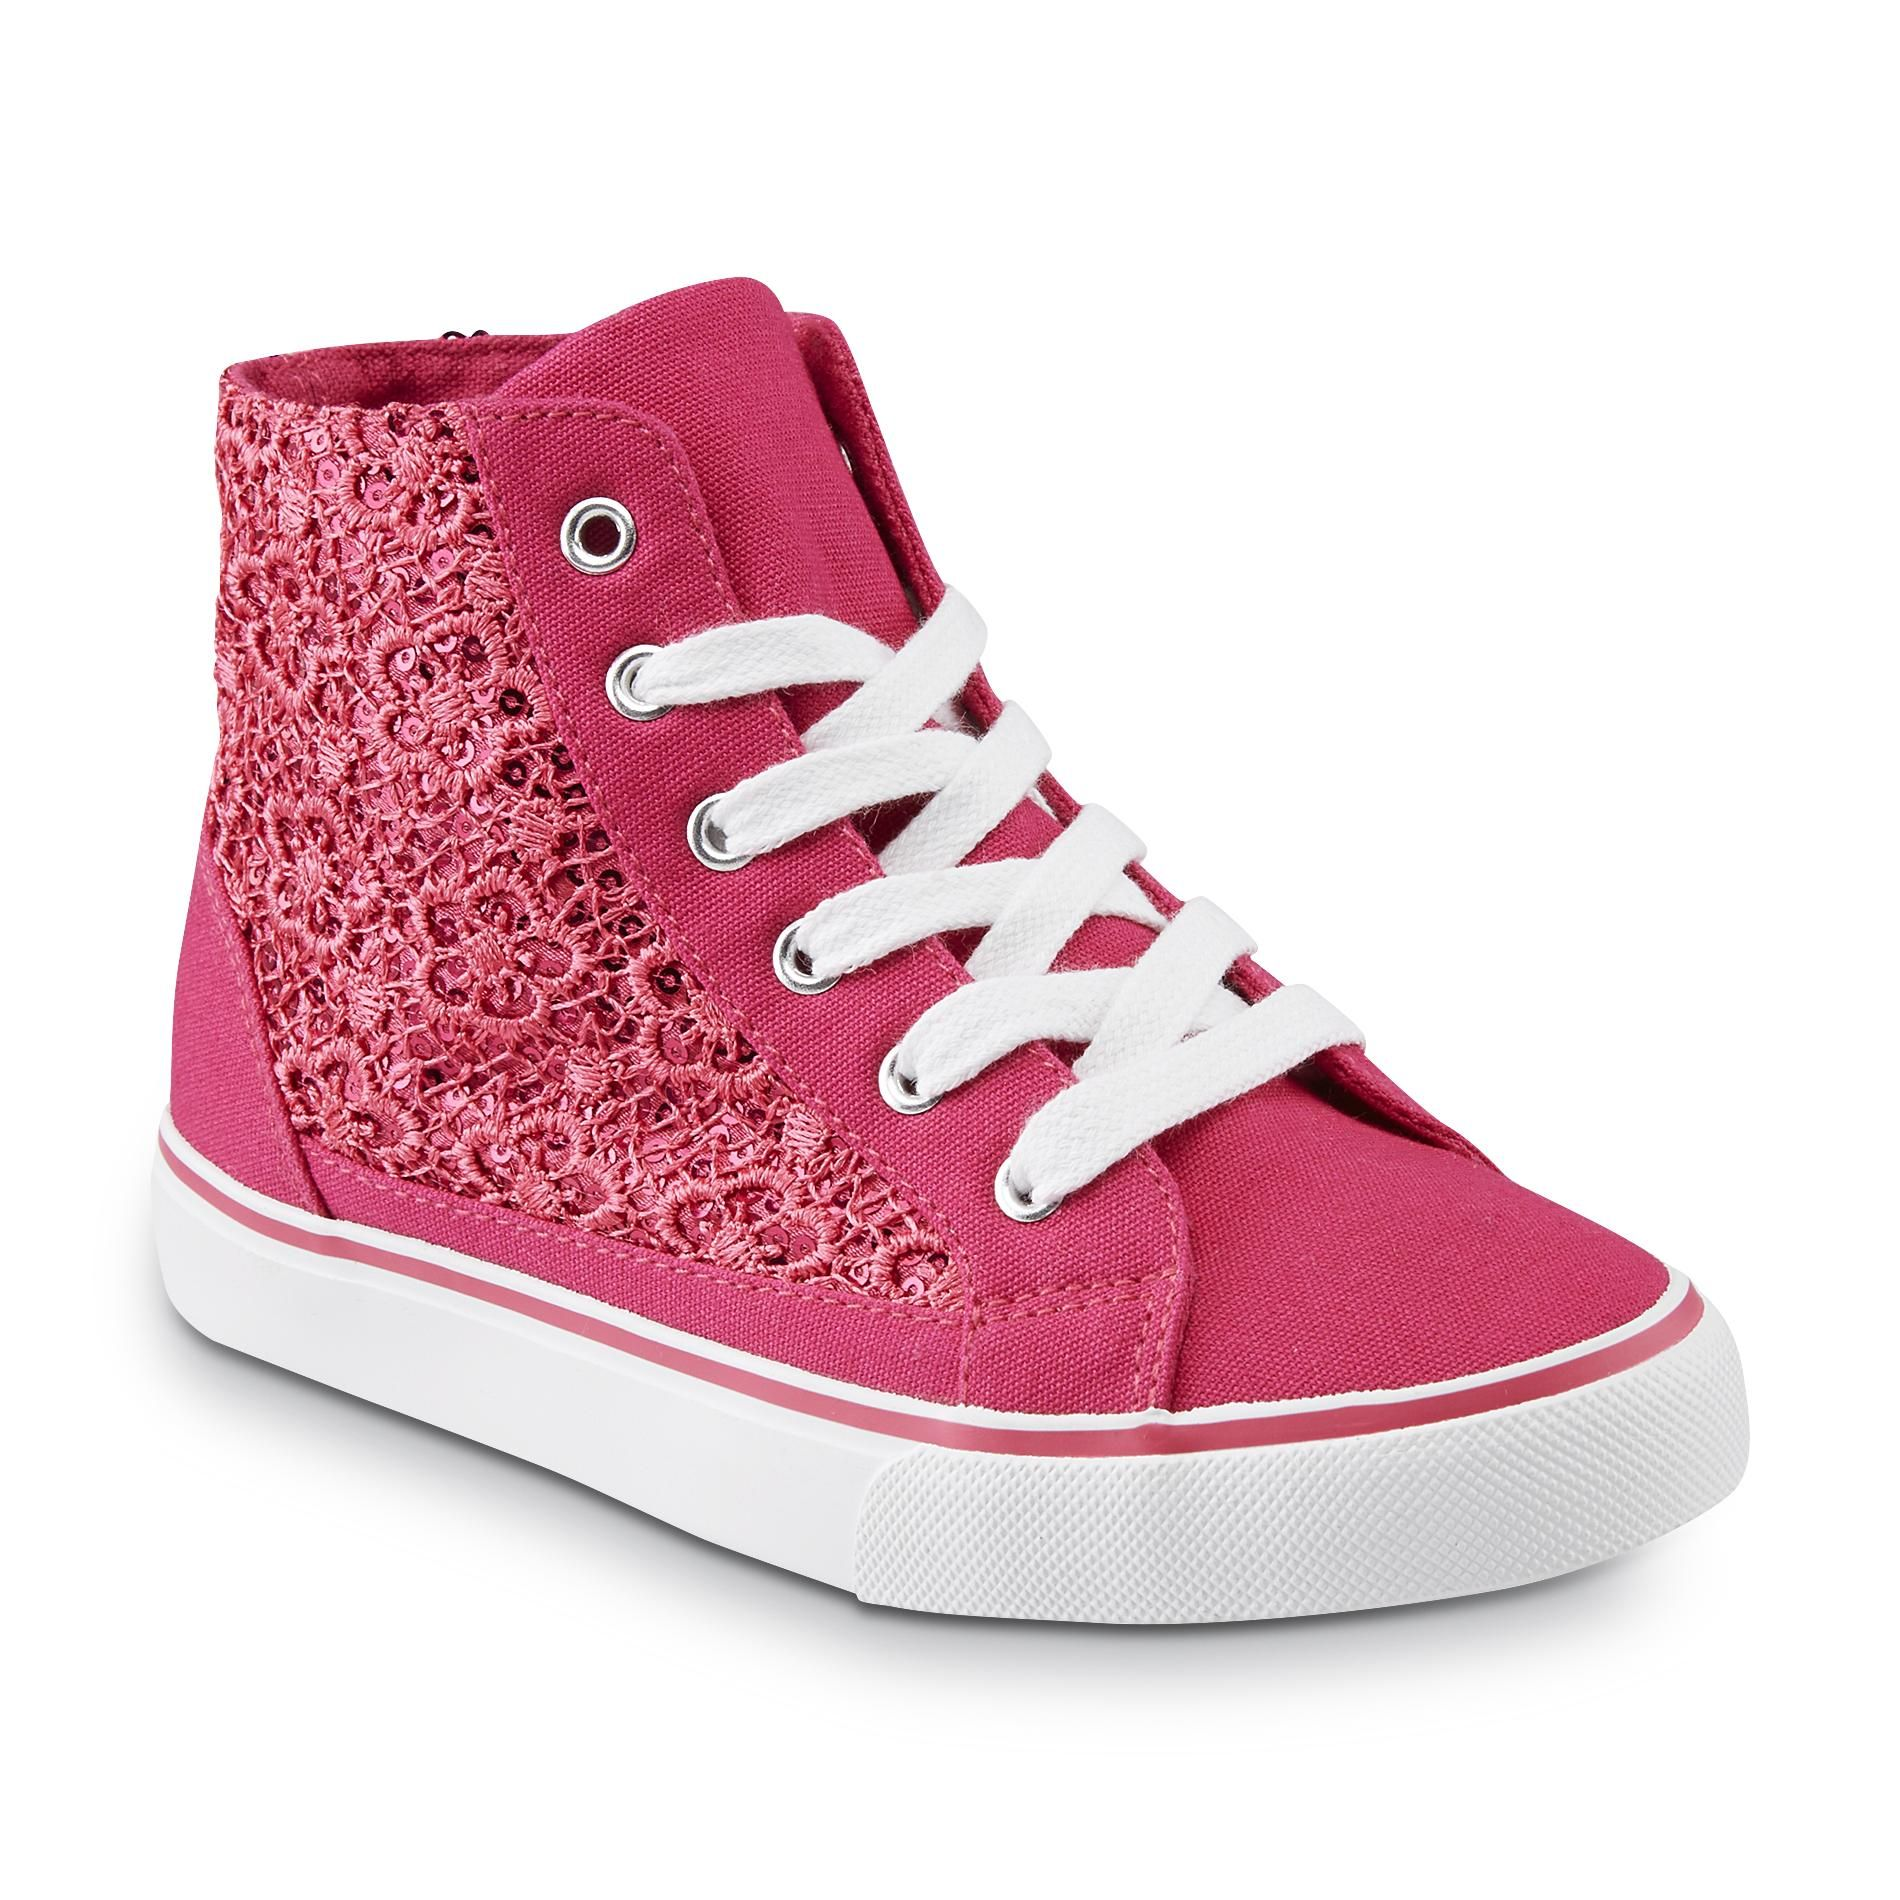 Girls' Shoes | Shoes For Girls - Sears | PINKIE STEPS ...